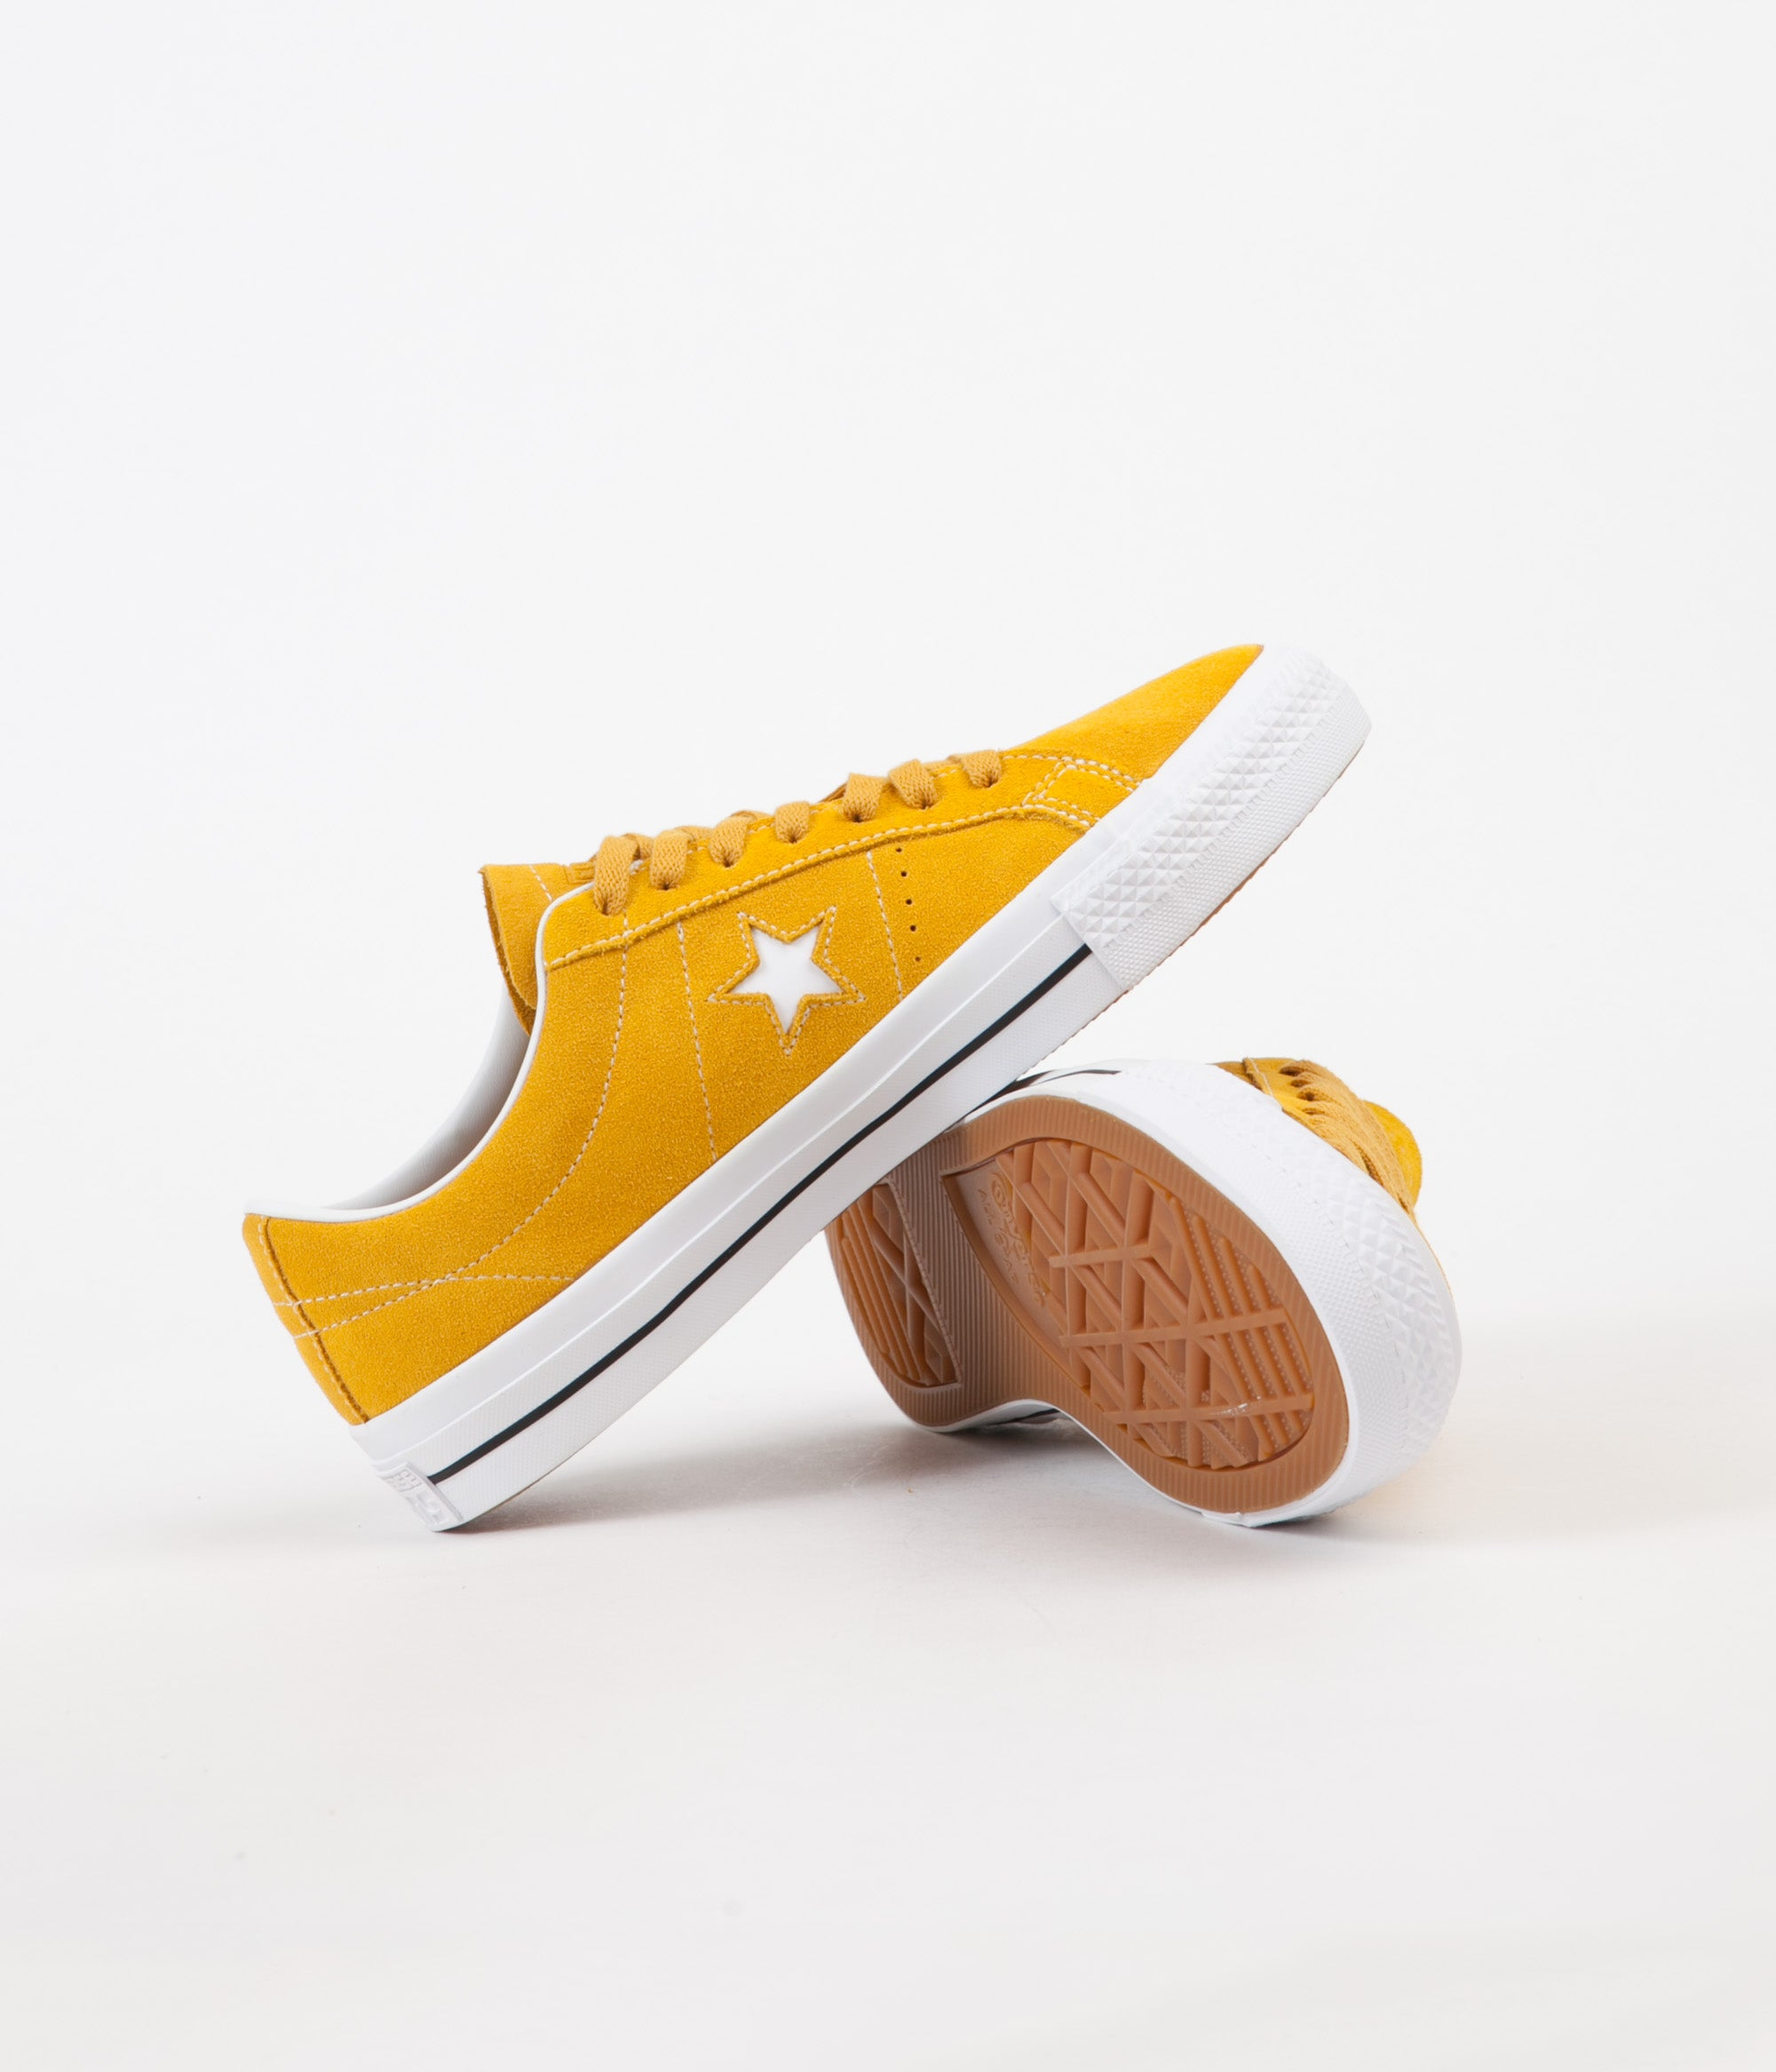 5d053834bbf239 ... Converse One Star Pro Ox Shoes - Mineral Yellow   White   Black ...